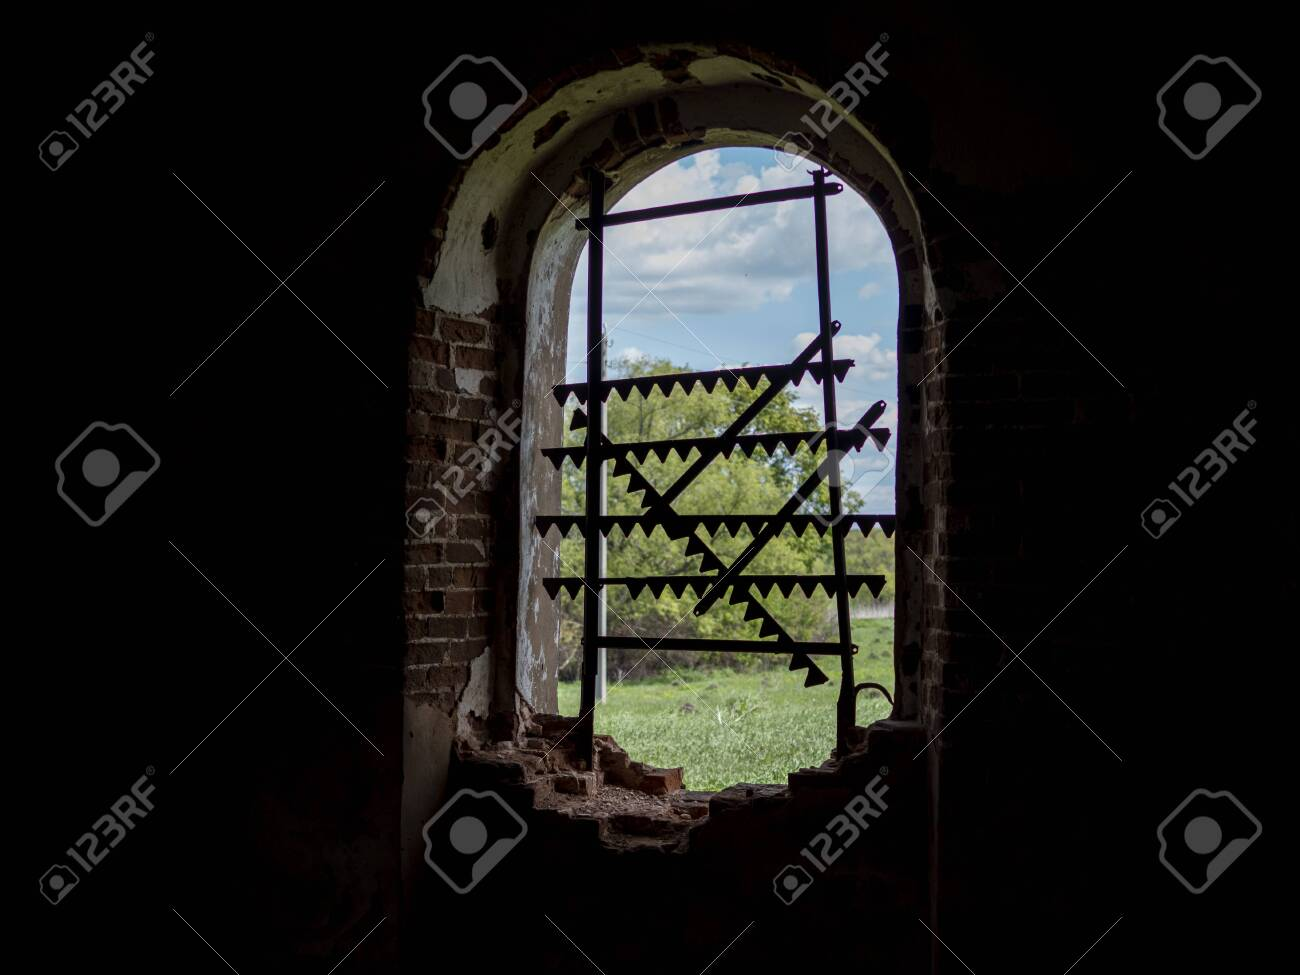 Windows of an ancient temple, in the wall of red brick, in the form of an arch. The hole in the wall is sealed with metal bars with teeth. - 149481540